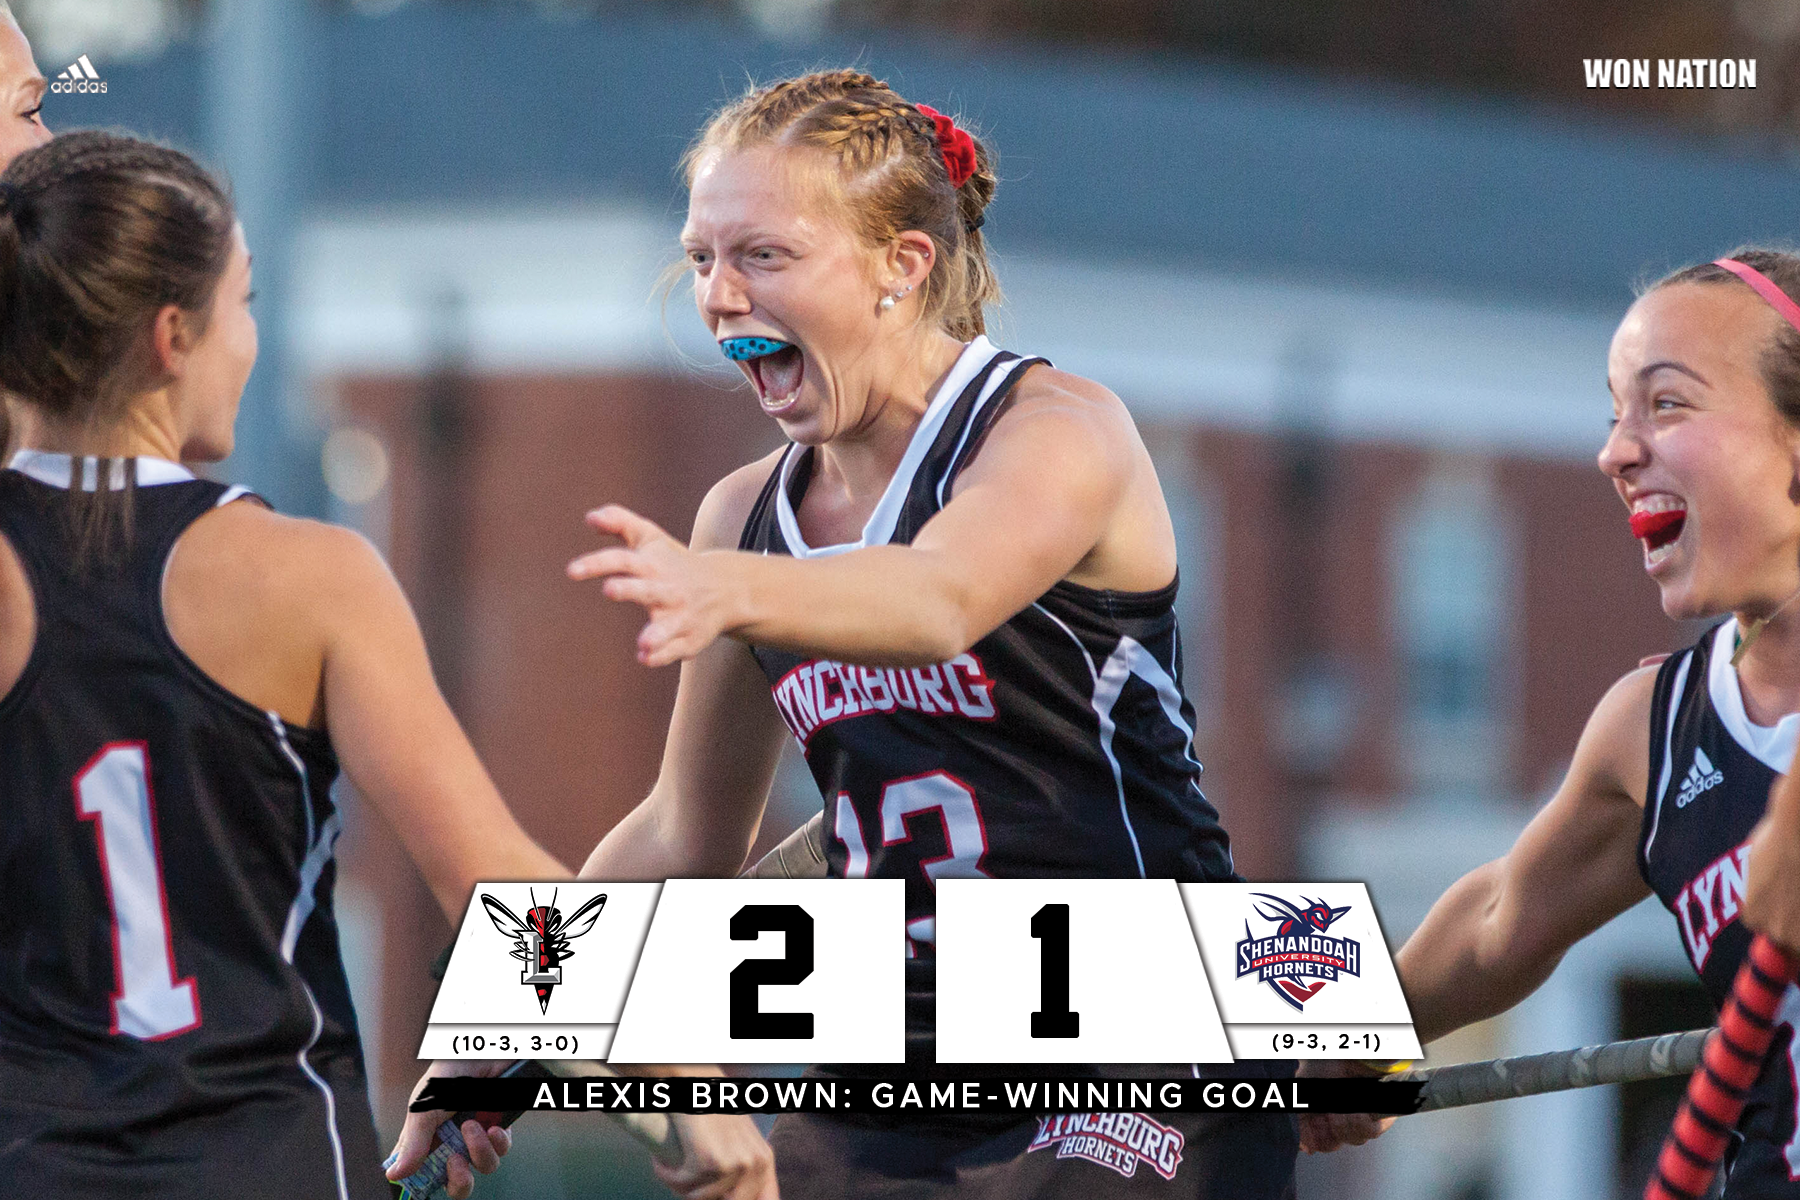 Alexis Brown and the Hornets celebrate a field hockey goal